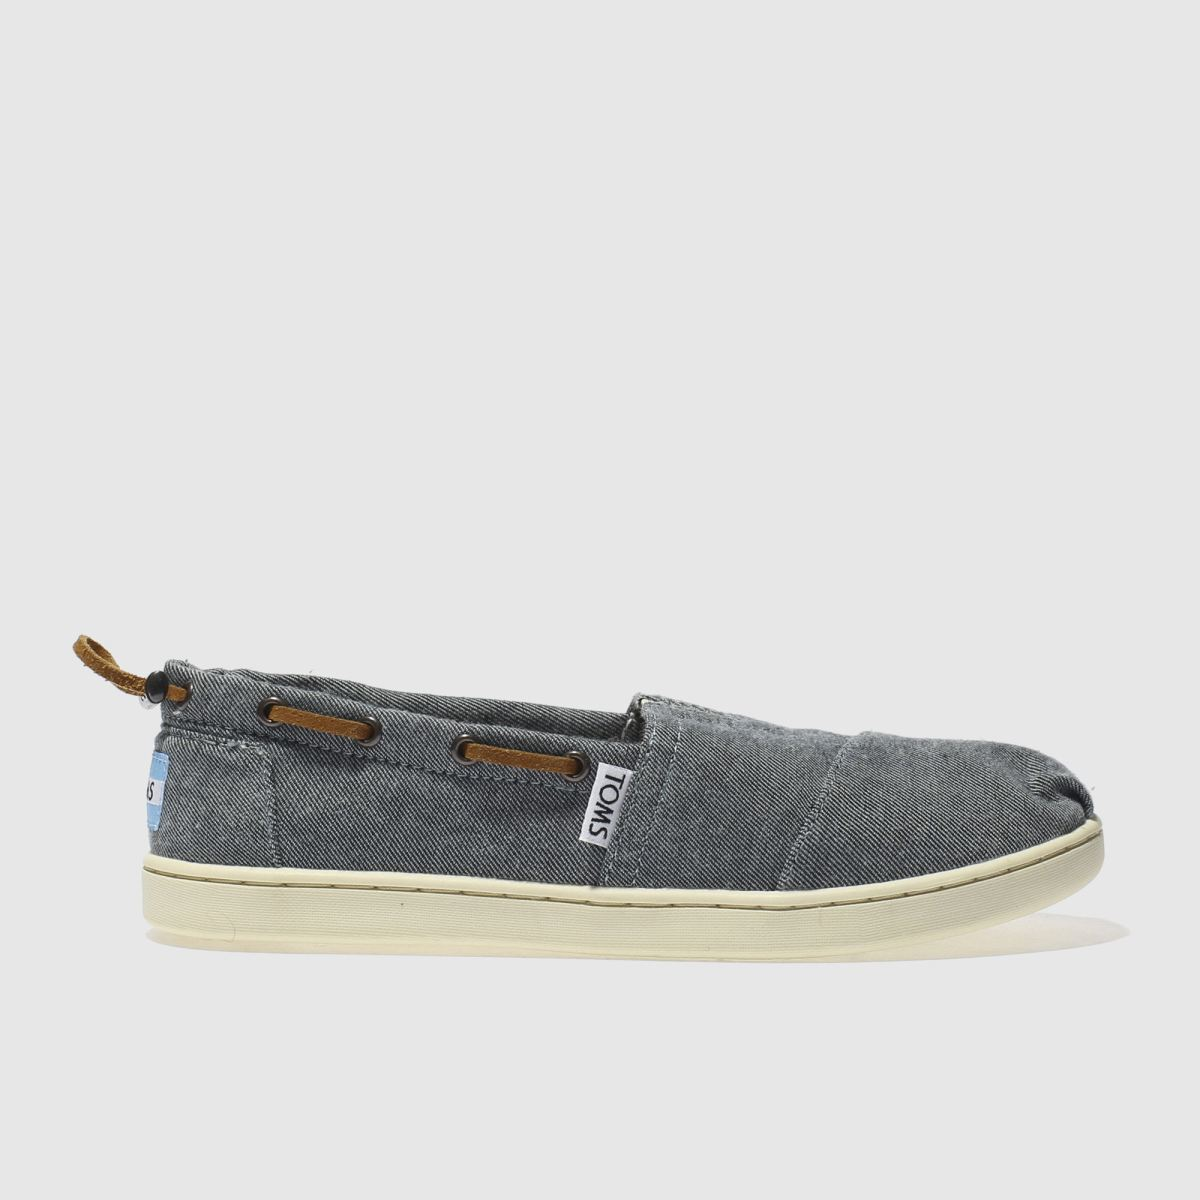 toms navy bimini Boys Youth Shoes